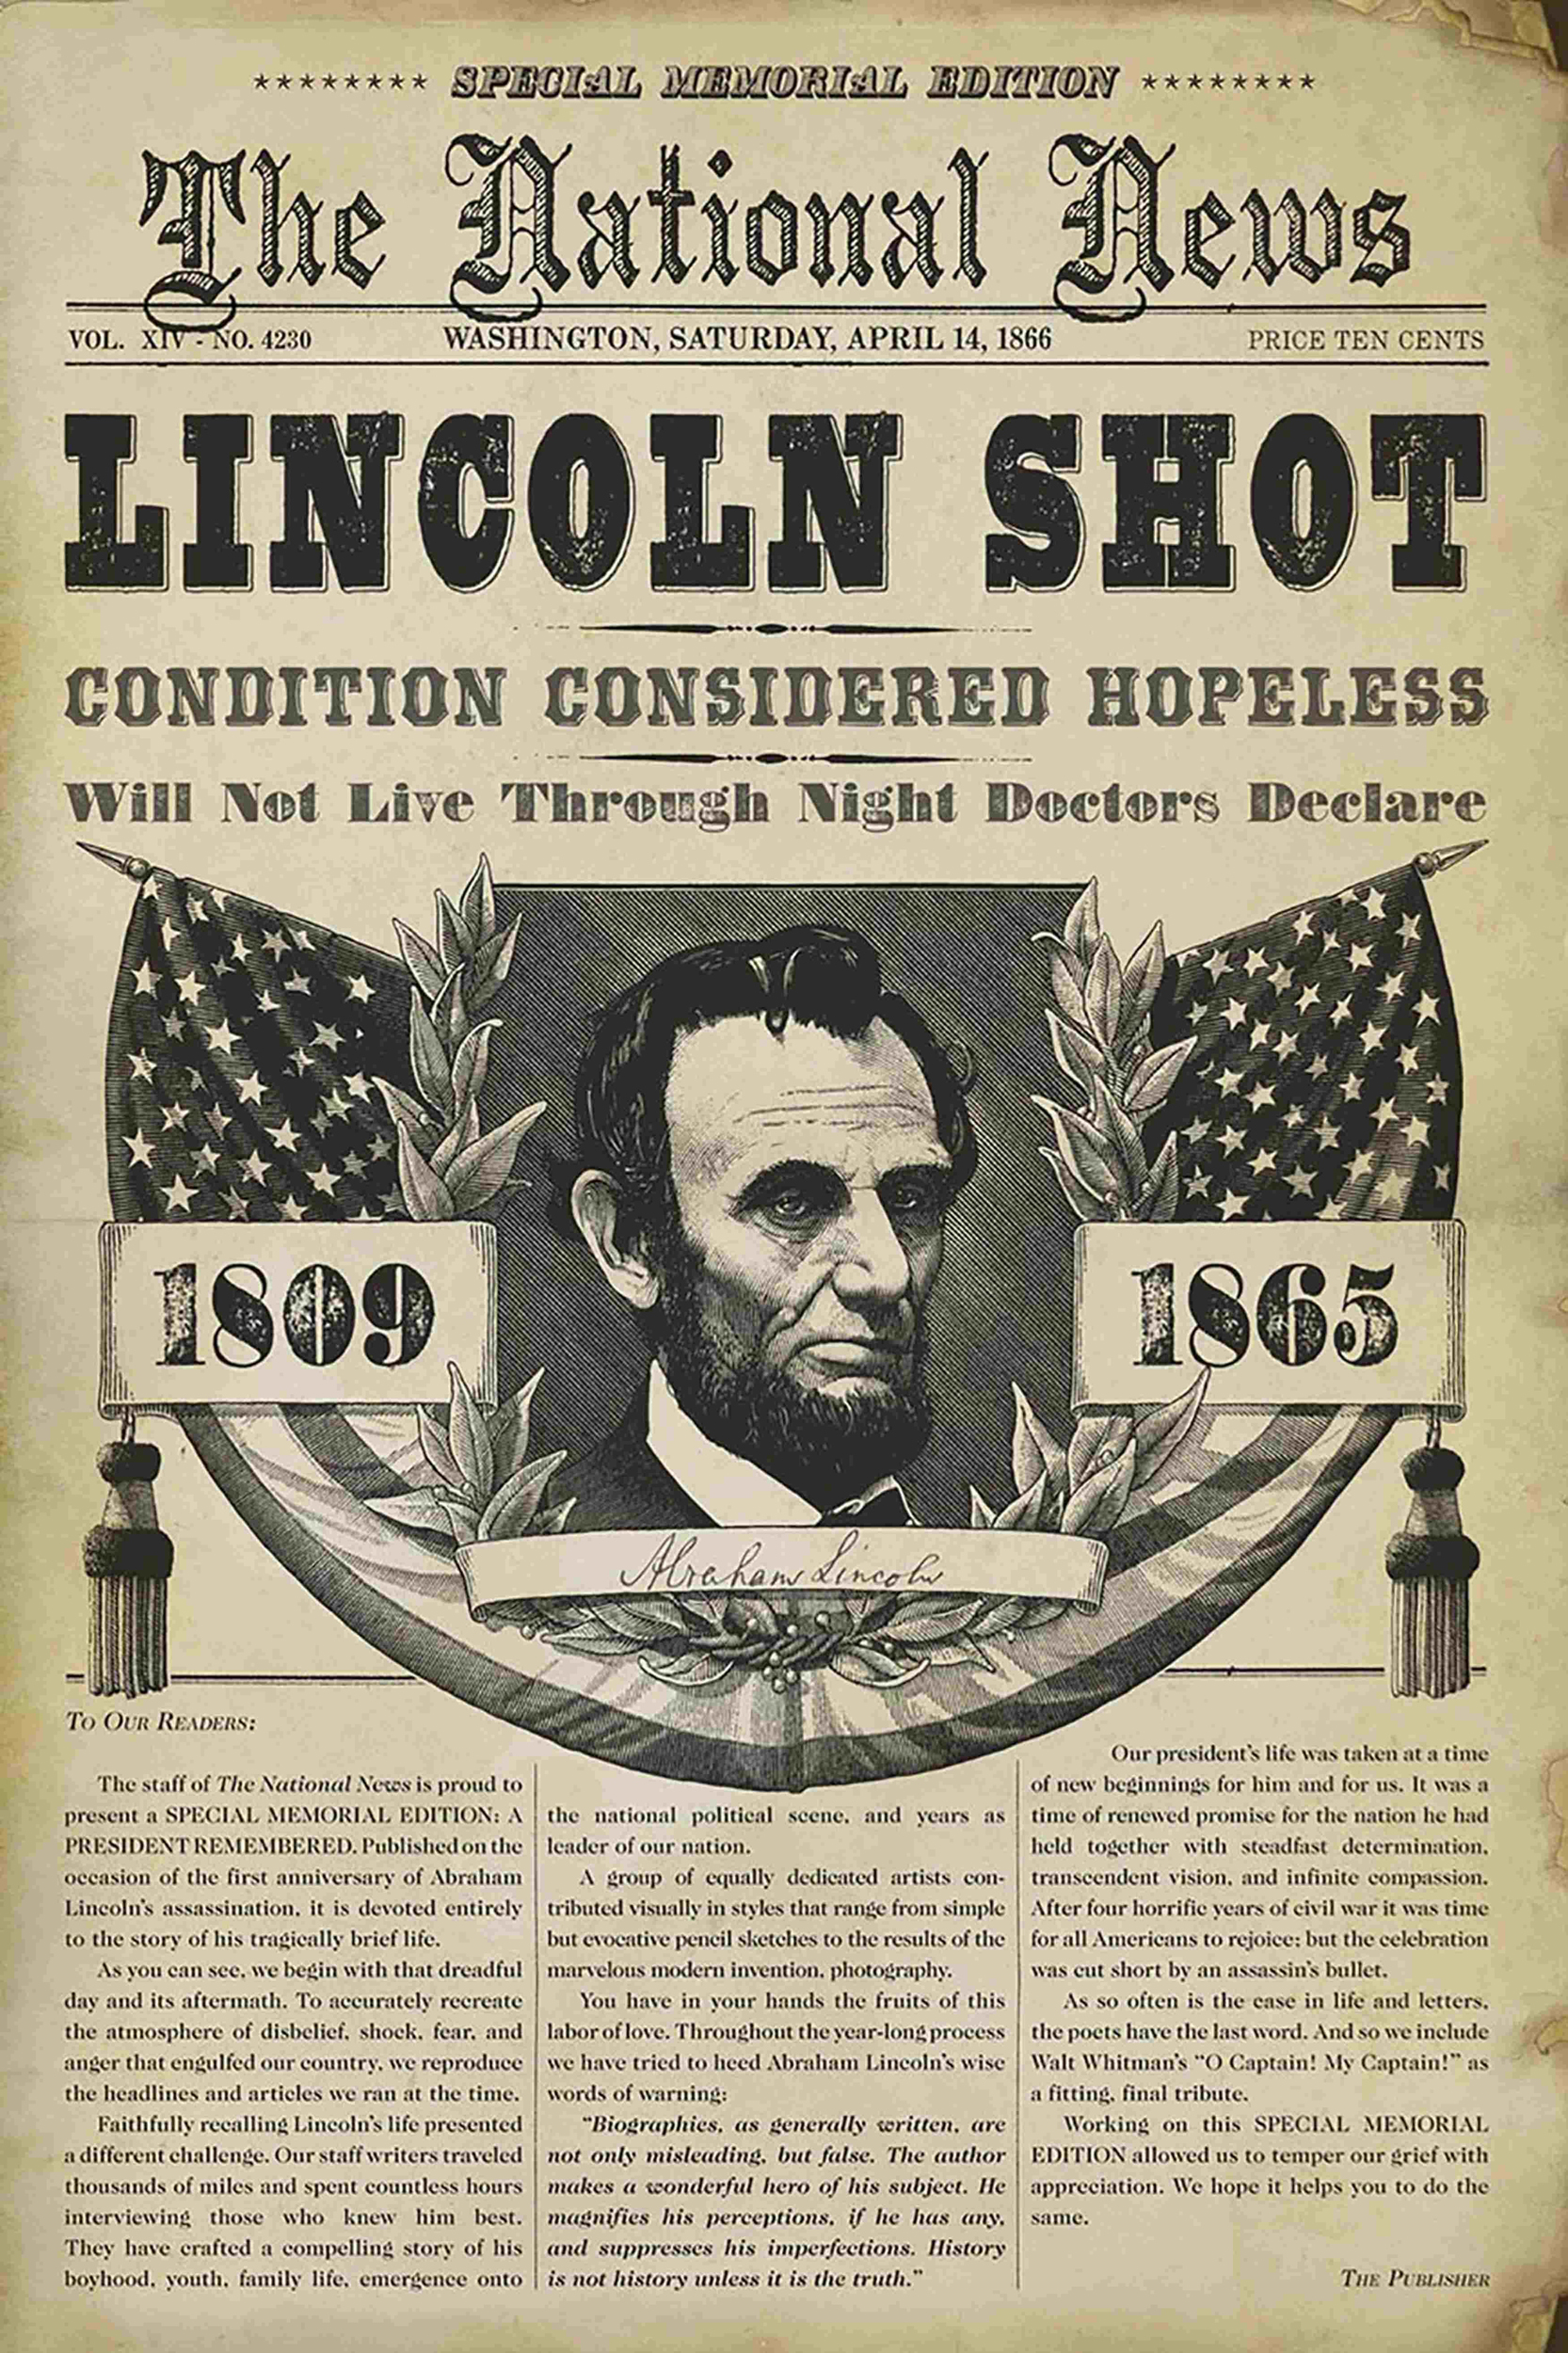 Abraham Lincoln Assassination Anniversary: How the Day Was ...